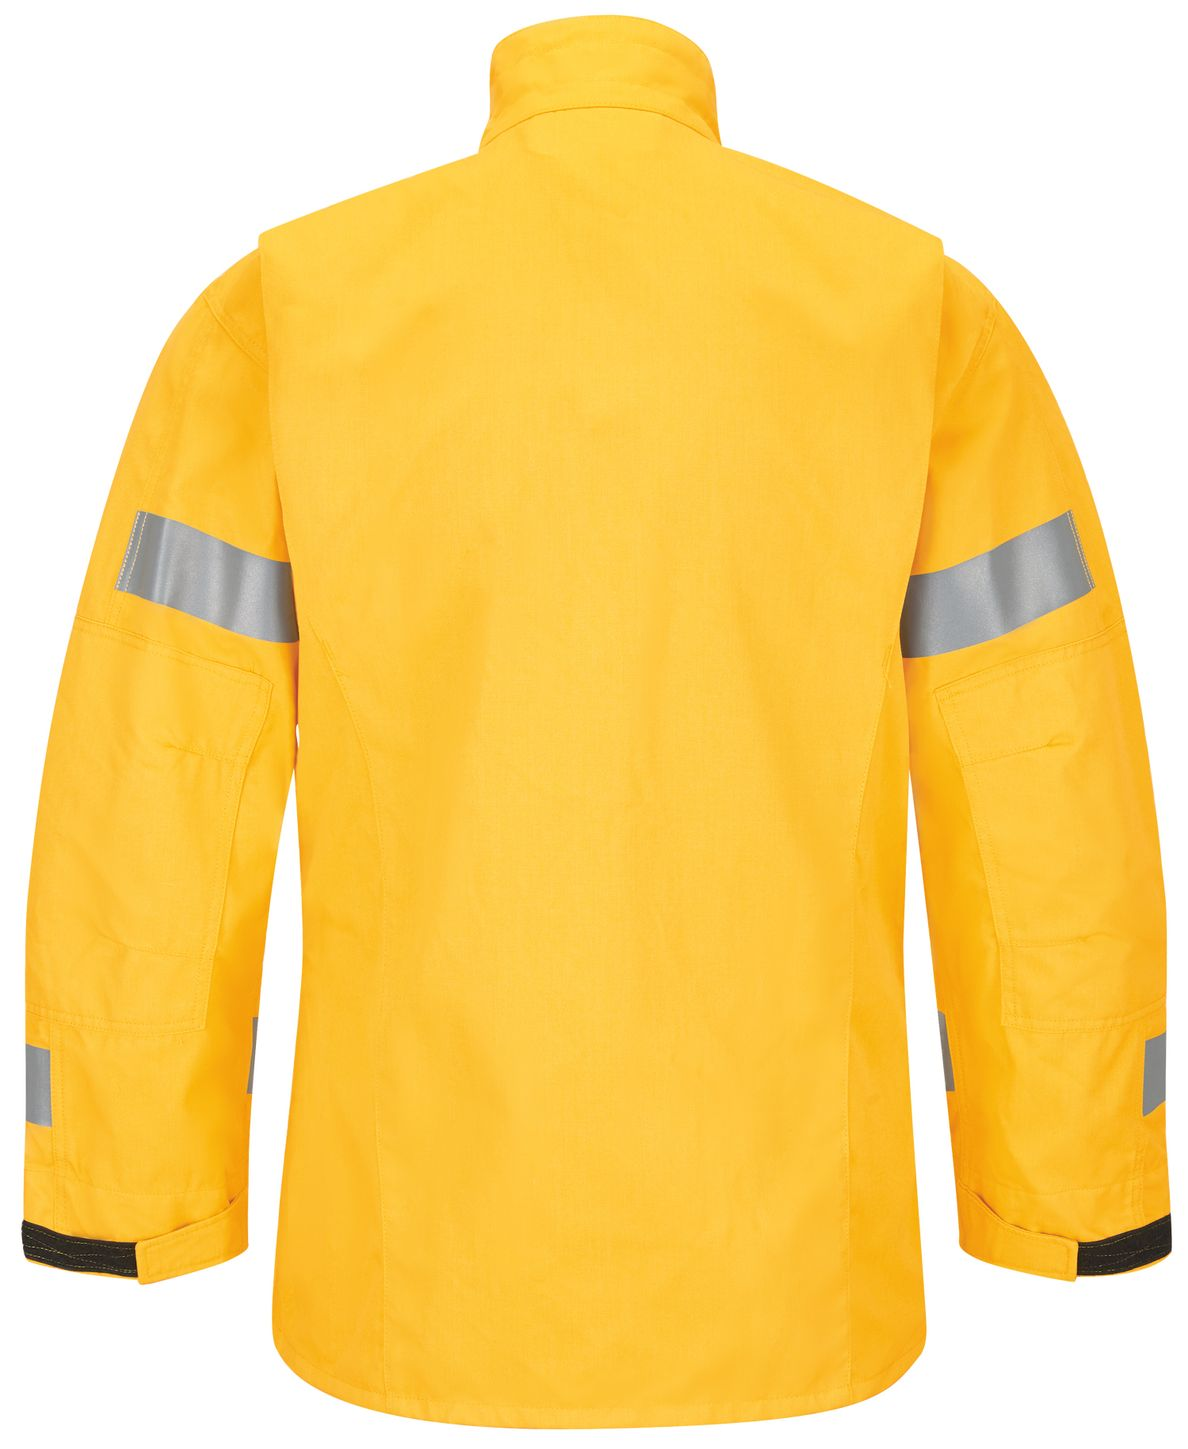 Workrite FR Jacket FW81, Relaxed Fit Wildland Yellow Back